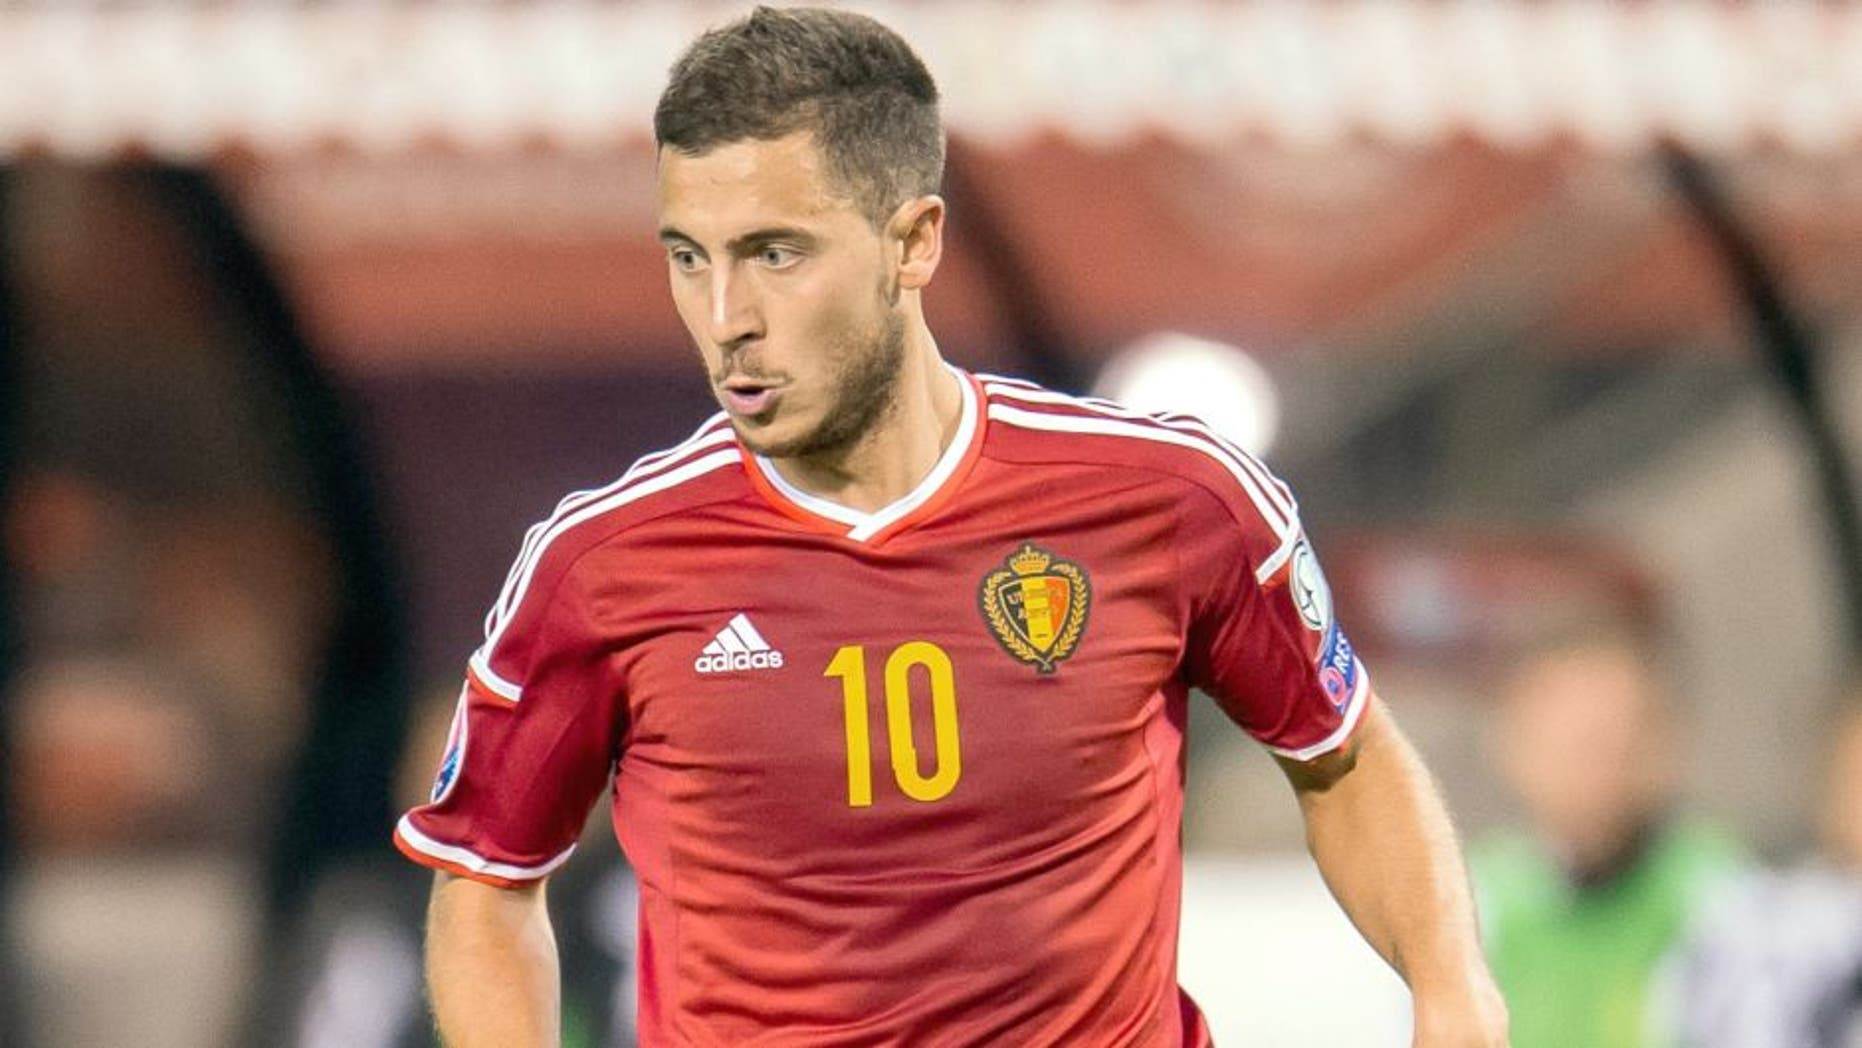 Eden Hazard of Belgium during the UEFA Euro 2016 qualifying match between Belgium and Bosnia and Herzegovina on September 3, 2015 at the Koning Boudewijn Stadium in Brussels, Belgium.(Photo by VI Images via Getty Images)